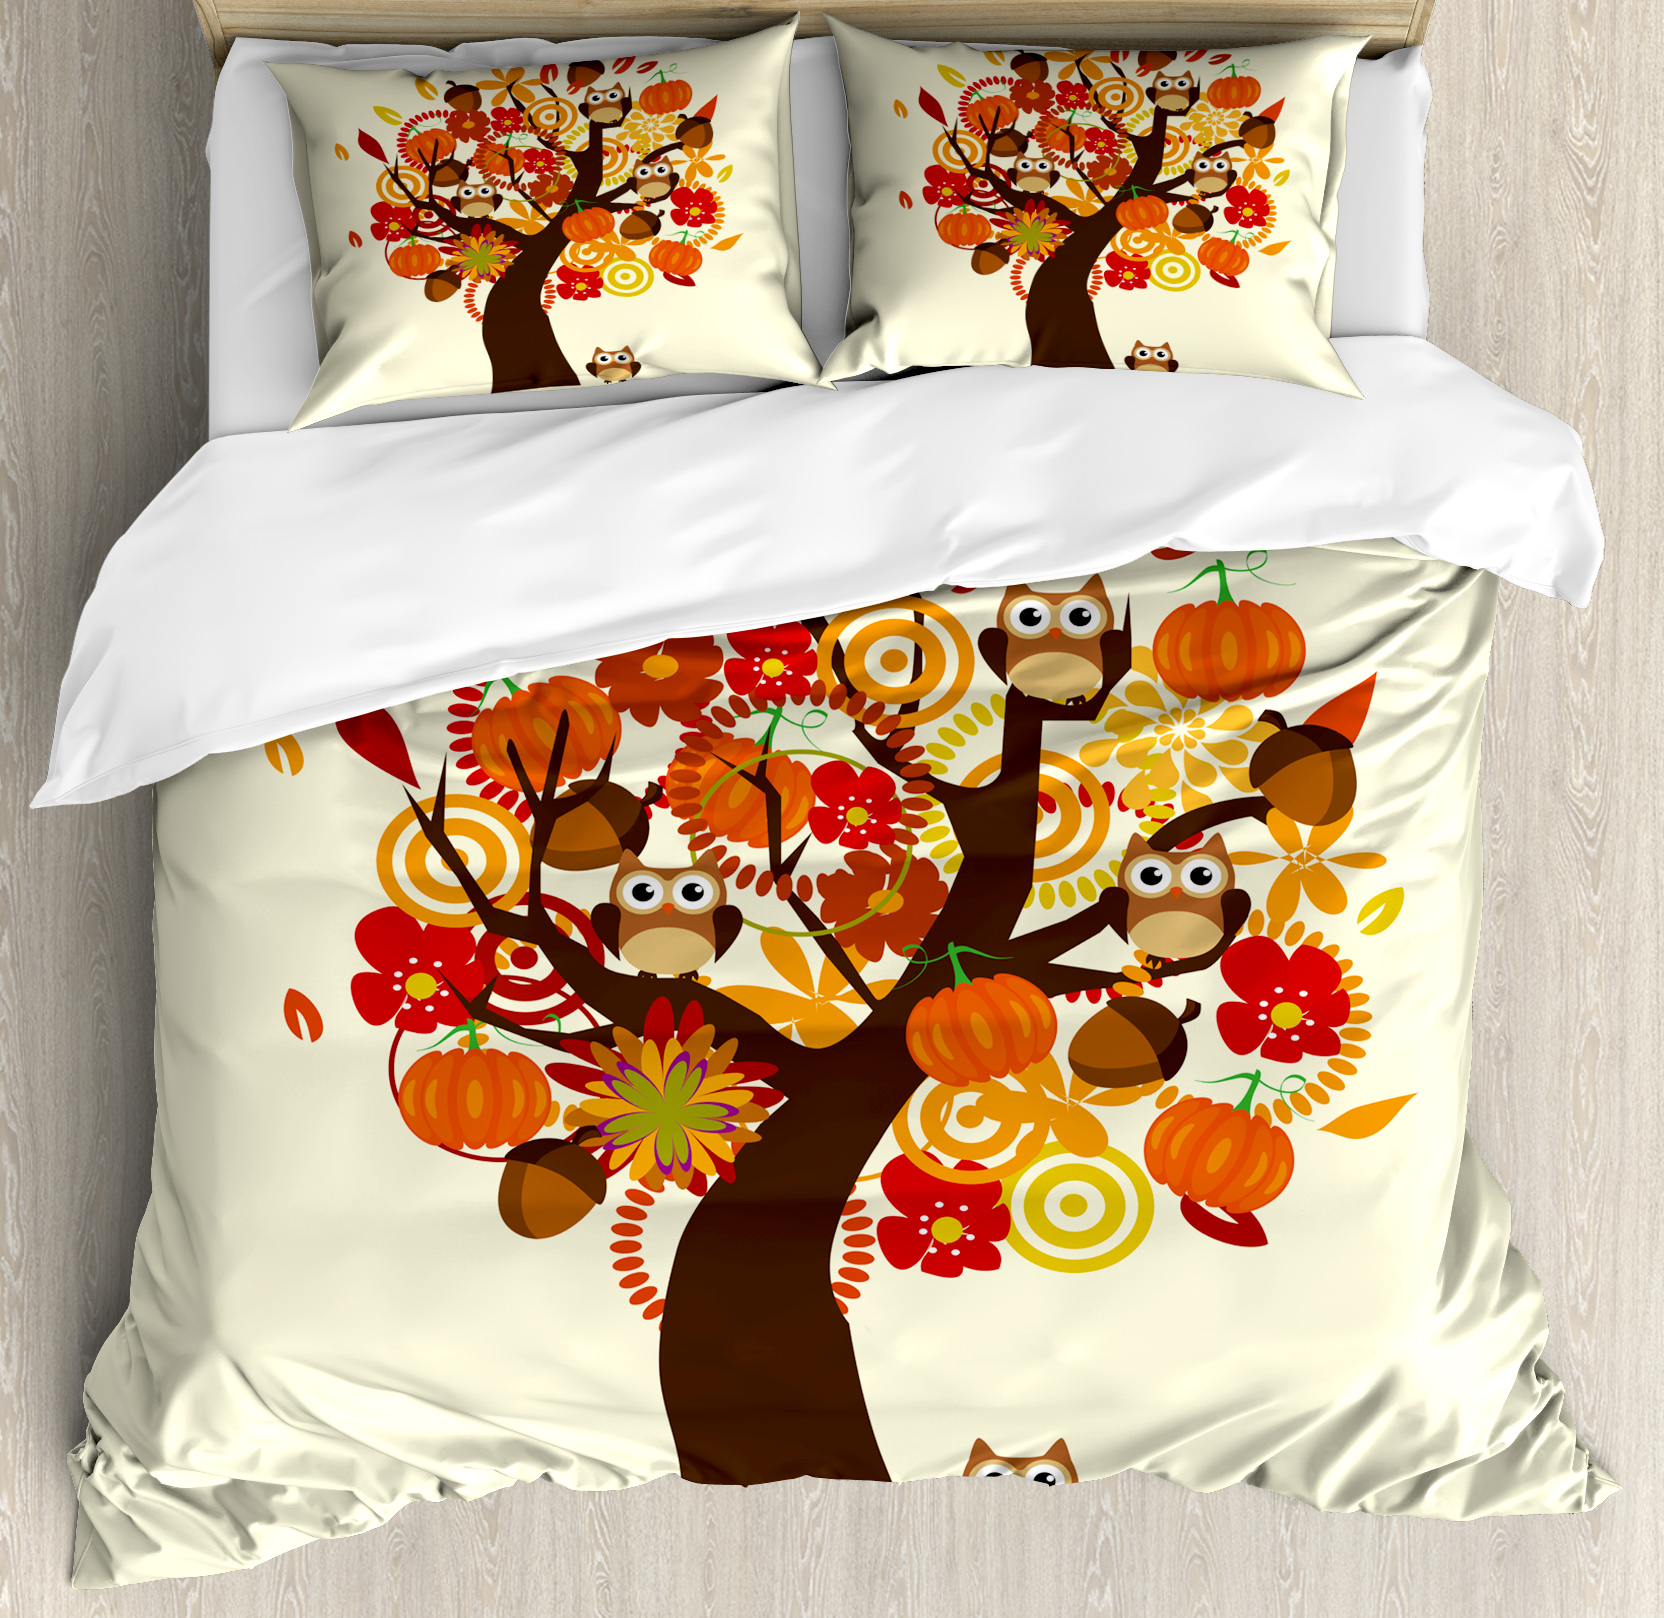 Kids Thanksgiving King Size Duvet Cover Set, Abstract Fall Tree with Flowers Acorns Pumpkins and Owls Generous Nature, Decorative 3 Piece Bedding Set with 2 Pillow Shams, Multicolor, by Ambesonne